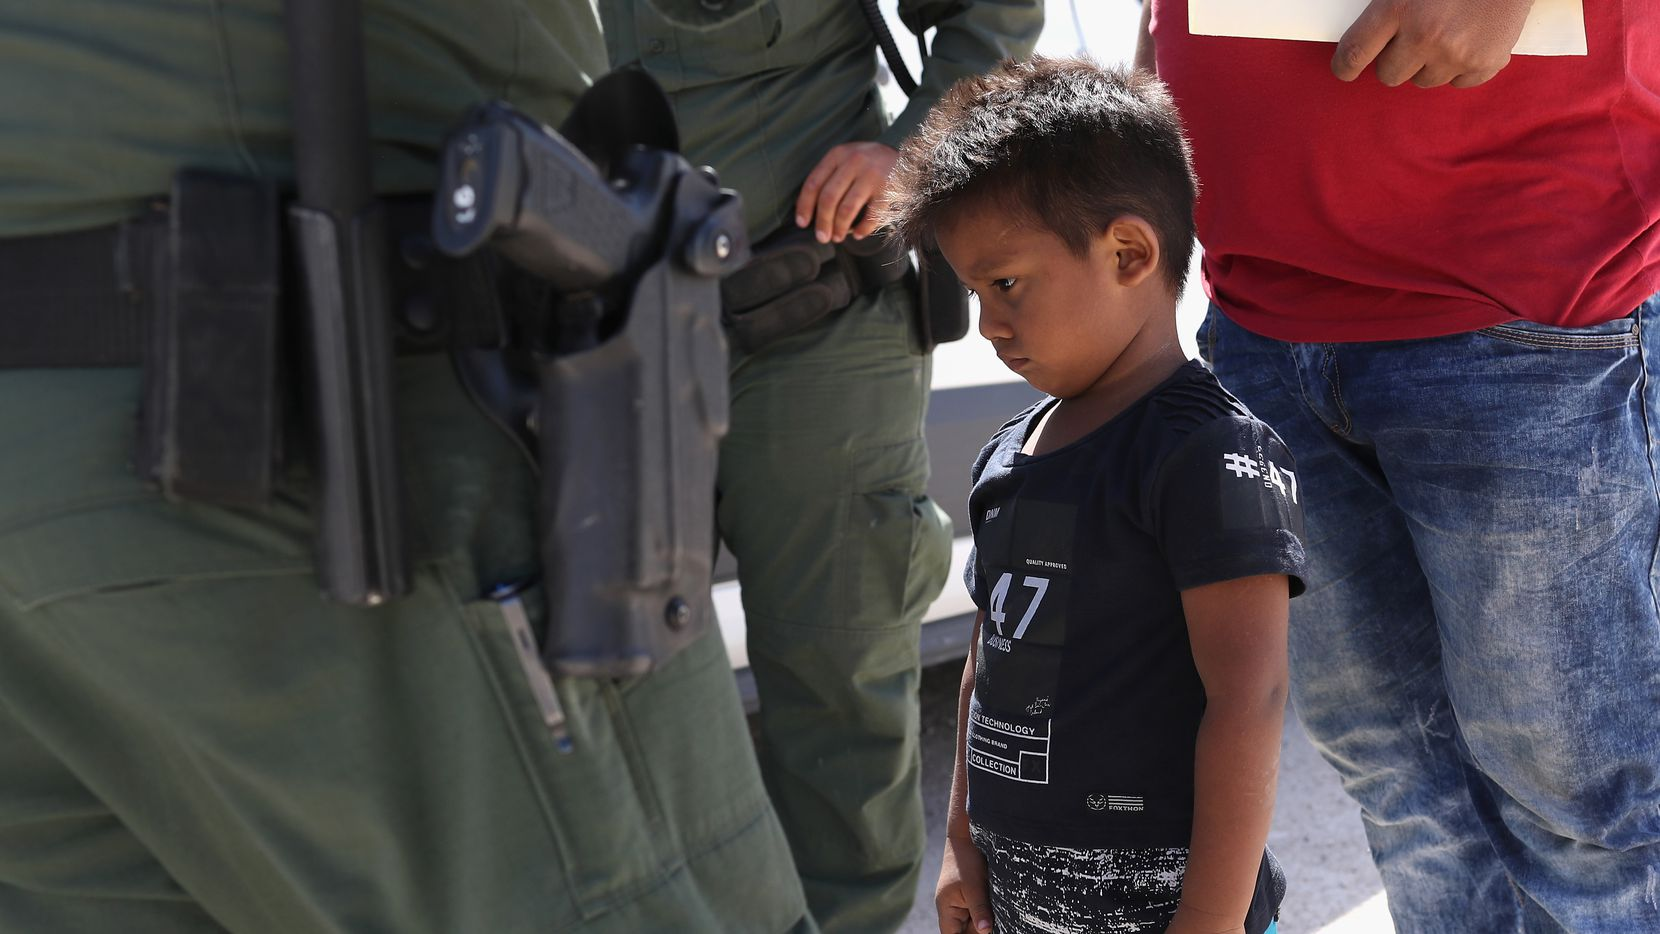 """A boy and father from Honduras are taken into custody by U.S. Border Patrol agents near the U.S.-Mexico Border on June 12, 2018 near Mission, Texas in response to the Trump administration's """"zero tolerance"""" policy. (Photo by John Moore/Getty Images)"""